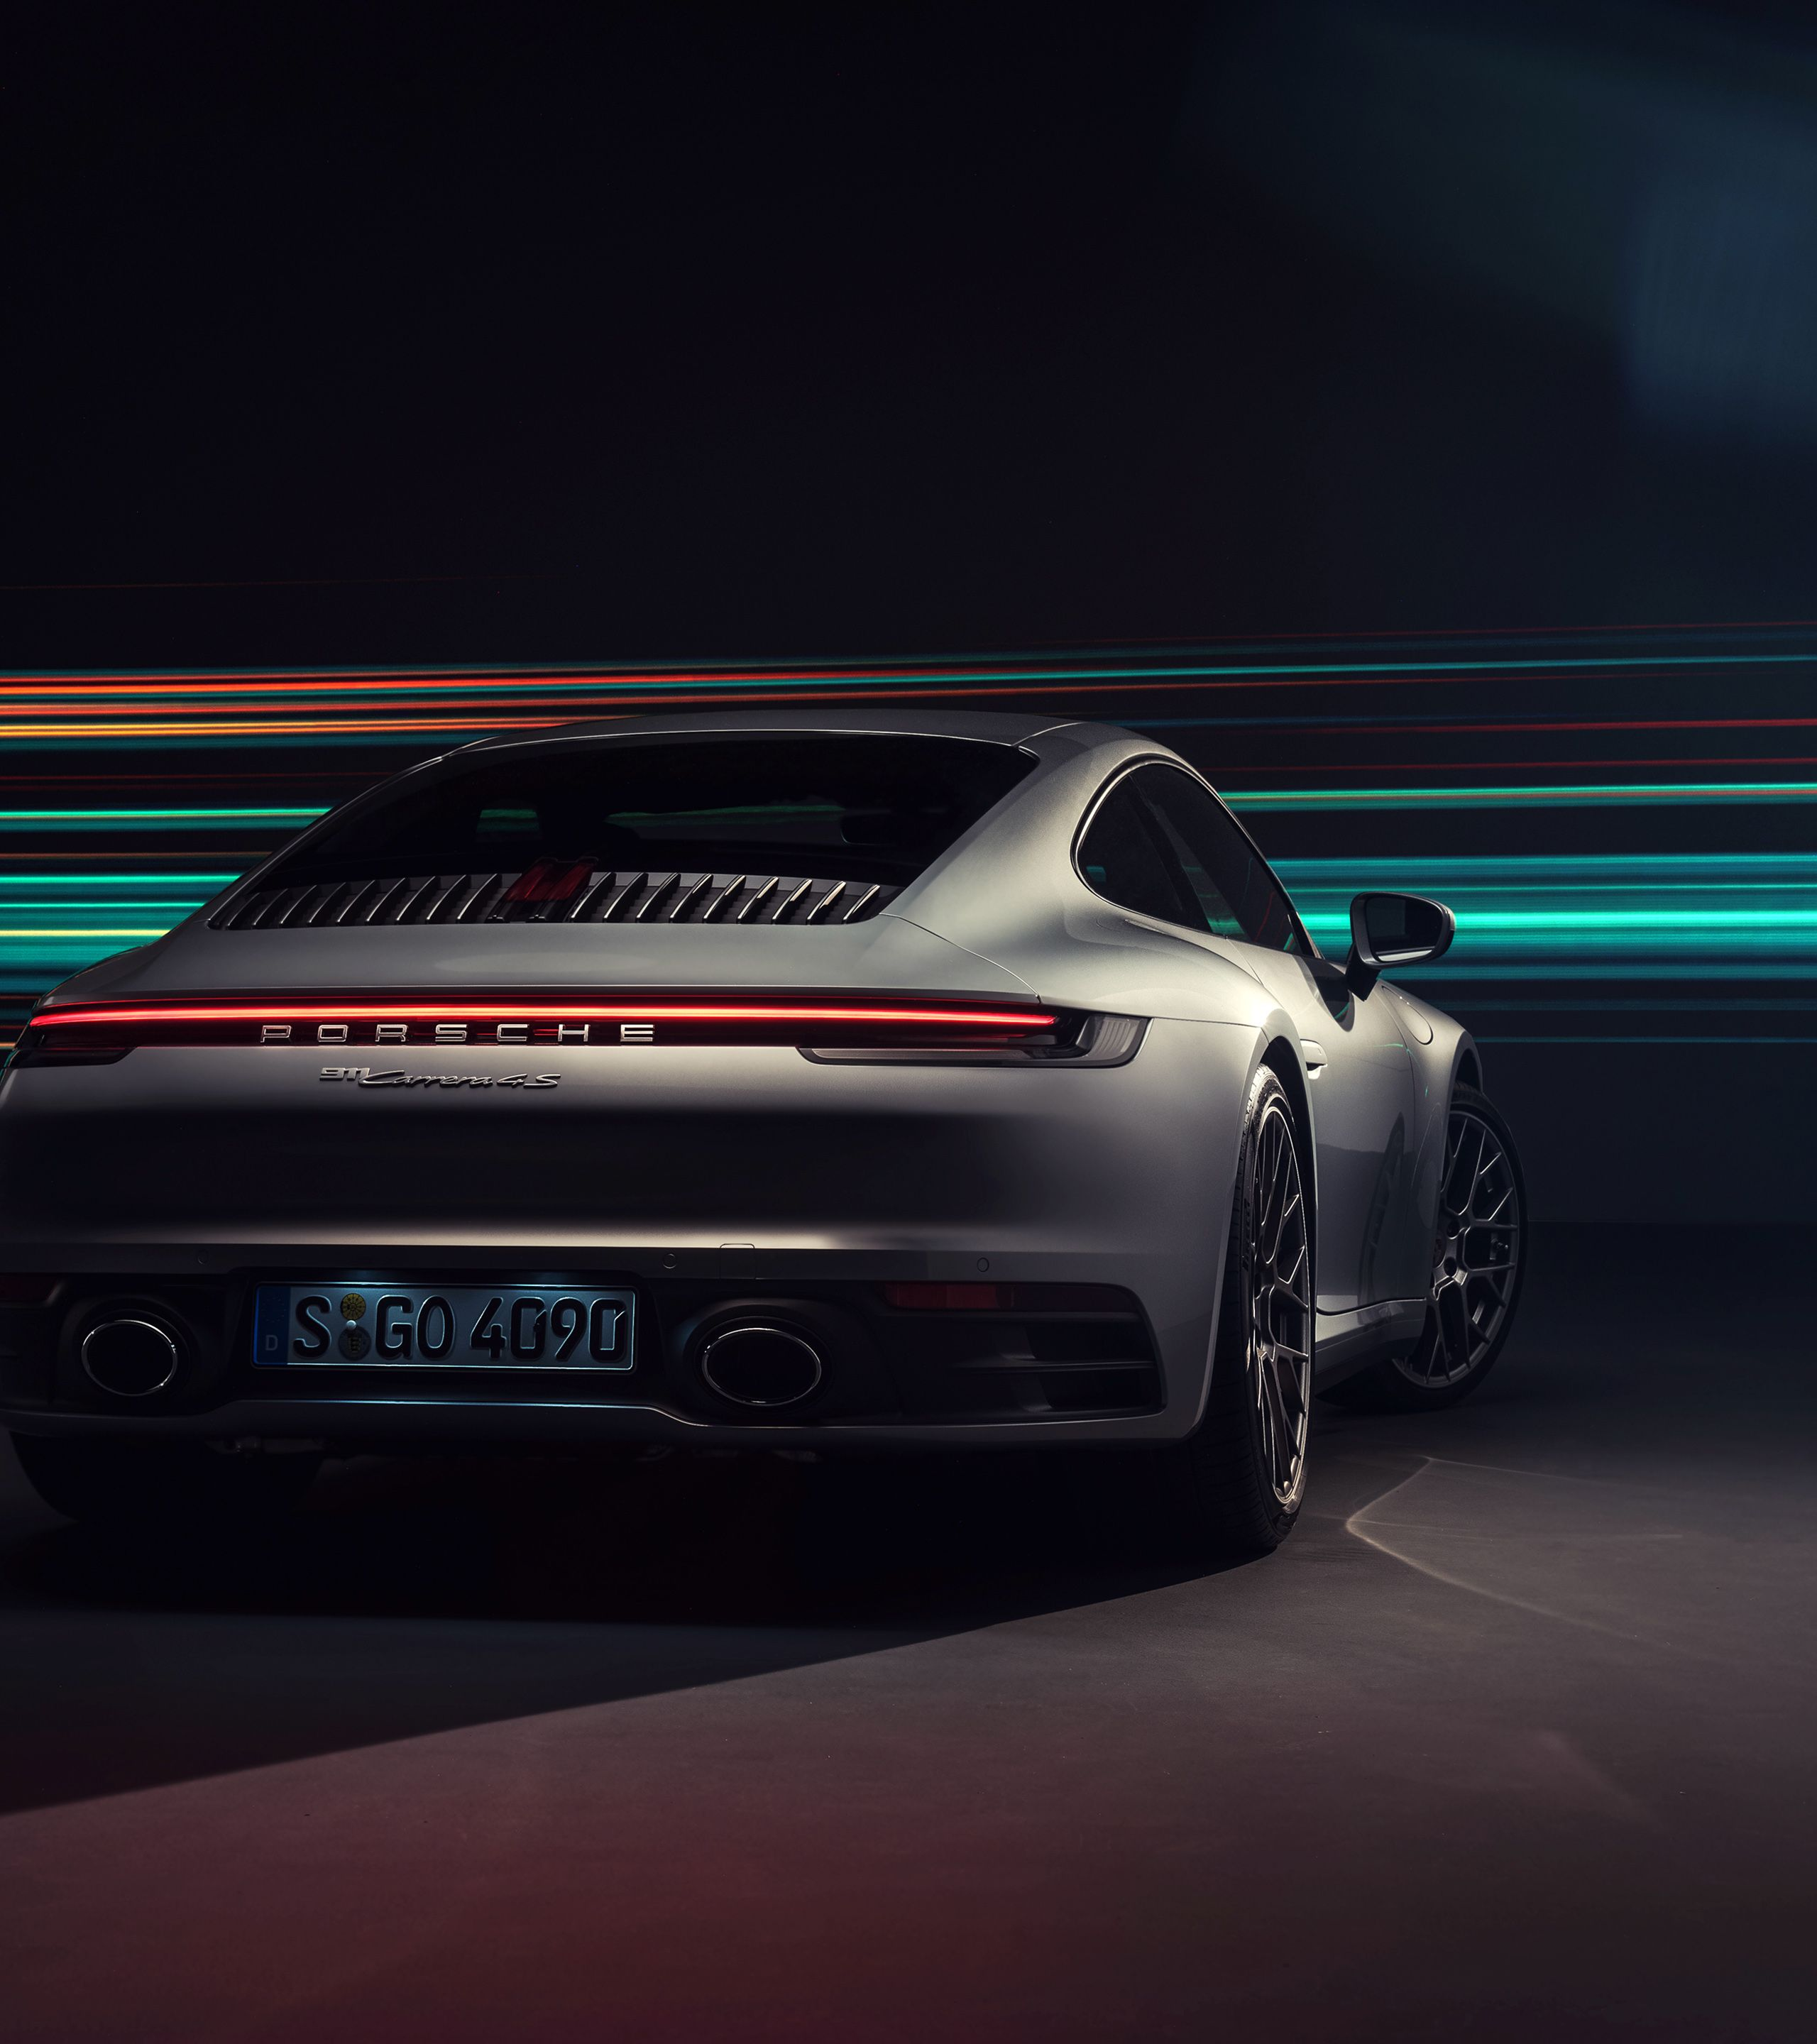 Hd Mobile Wallpaper Iphone Wallpaper 170 Porsche 911 Car Iphone Wallpaper New Porsche